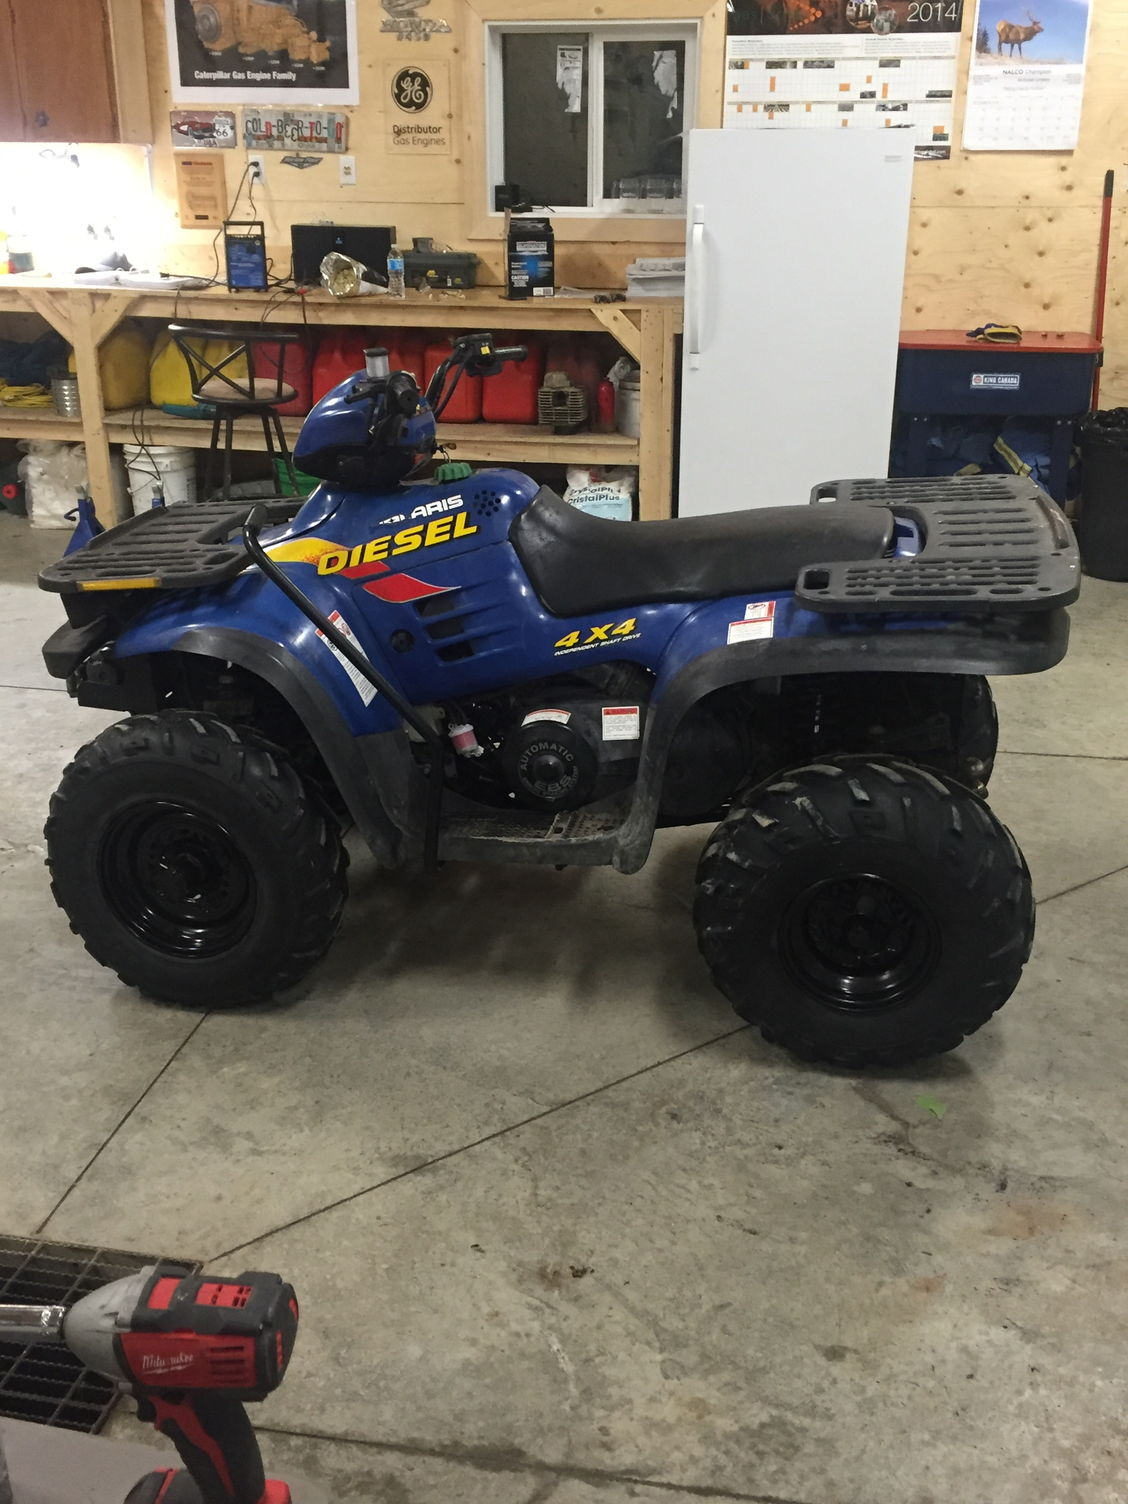 2000 Polaris Xpedition 425 Wiring Diagram Scrambler Trailblazer 250 On 500 4x4 Magnum